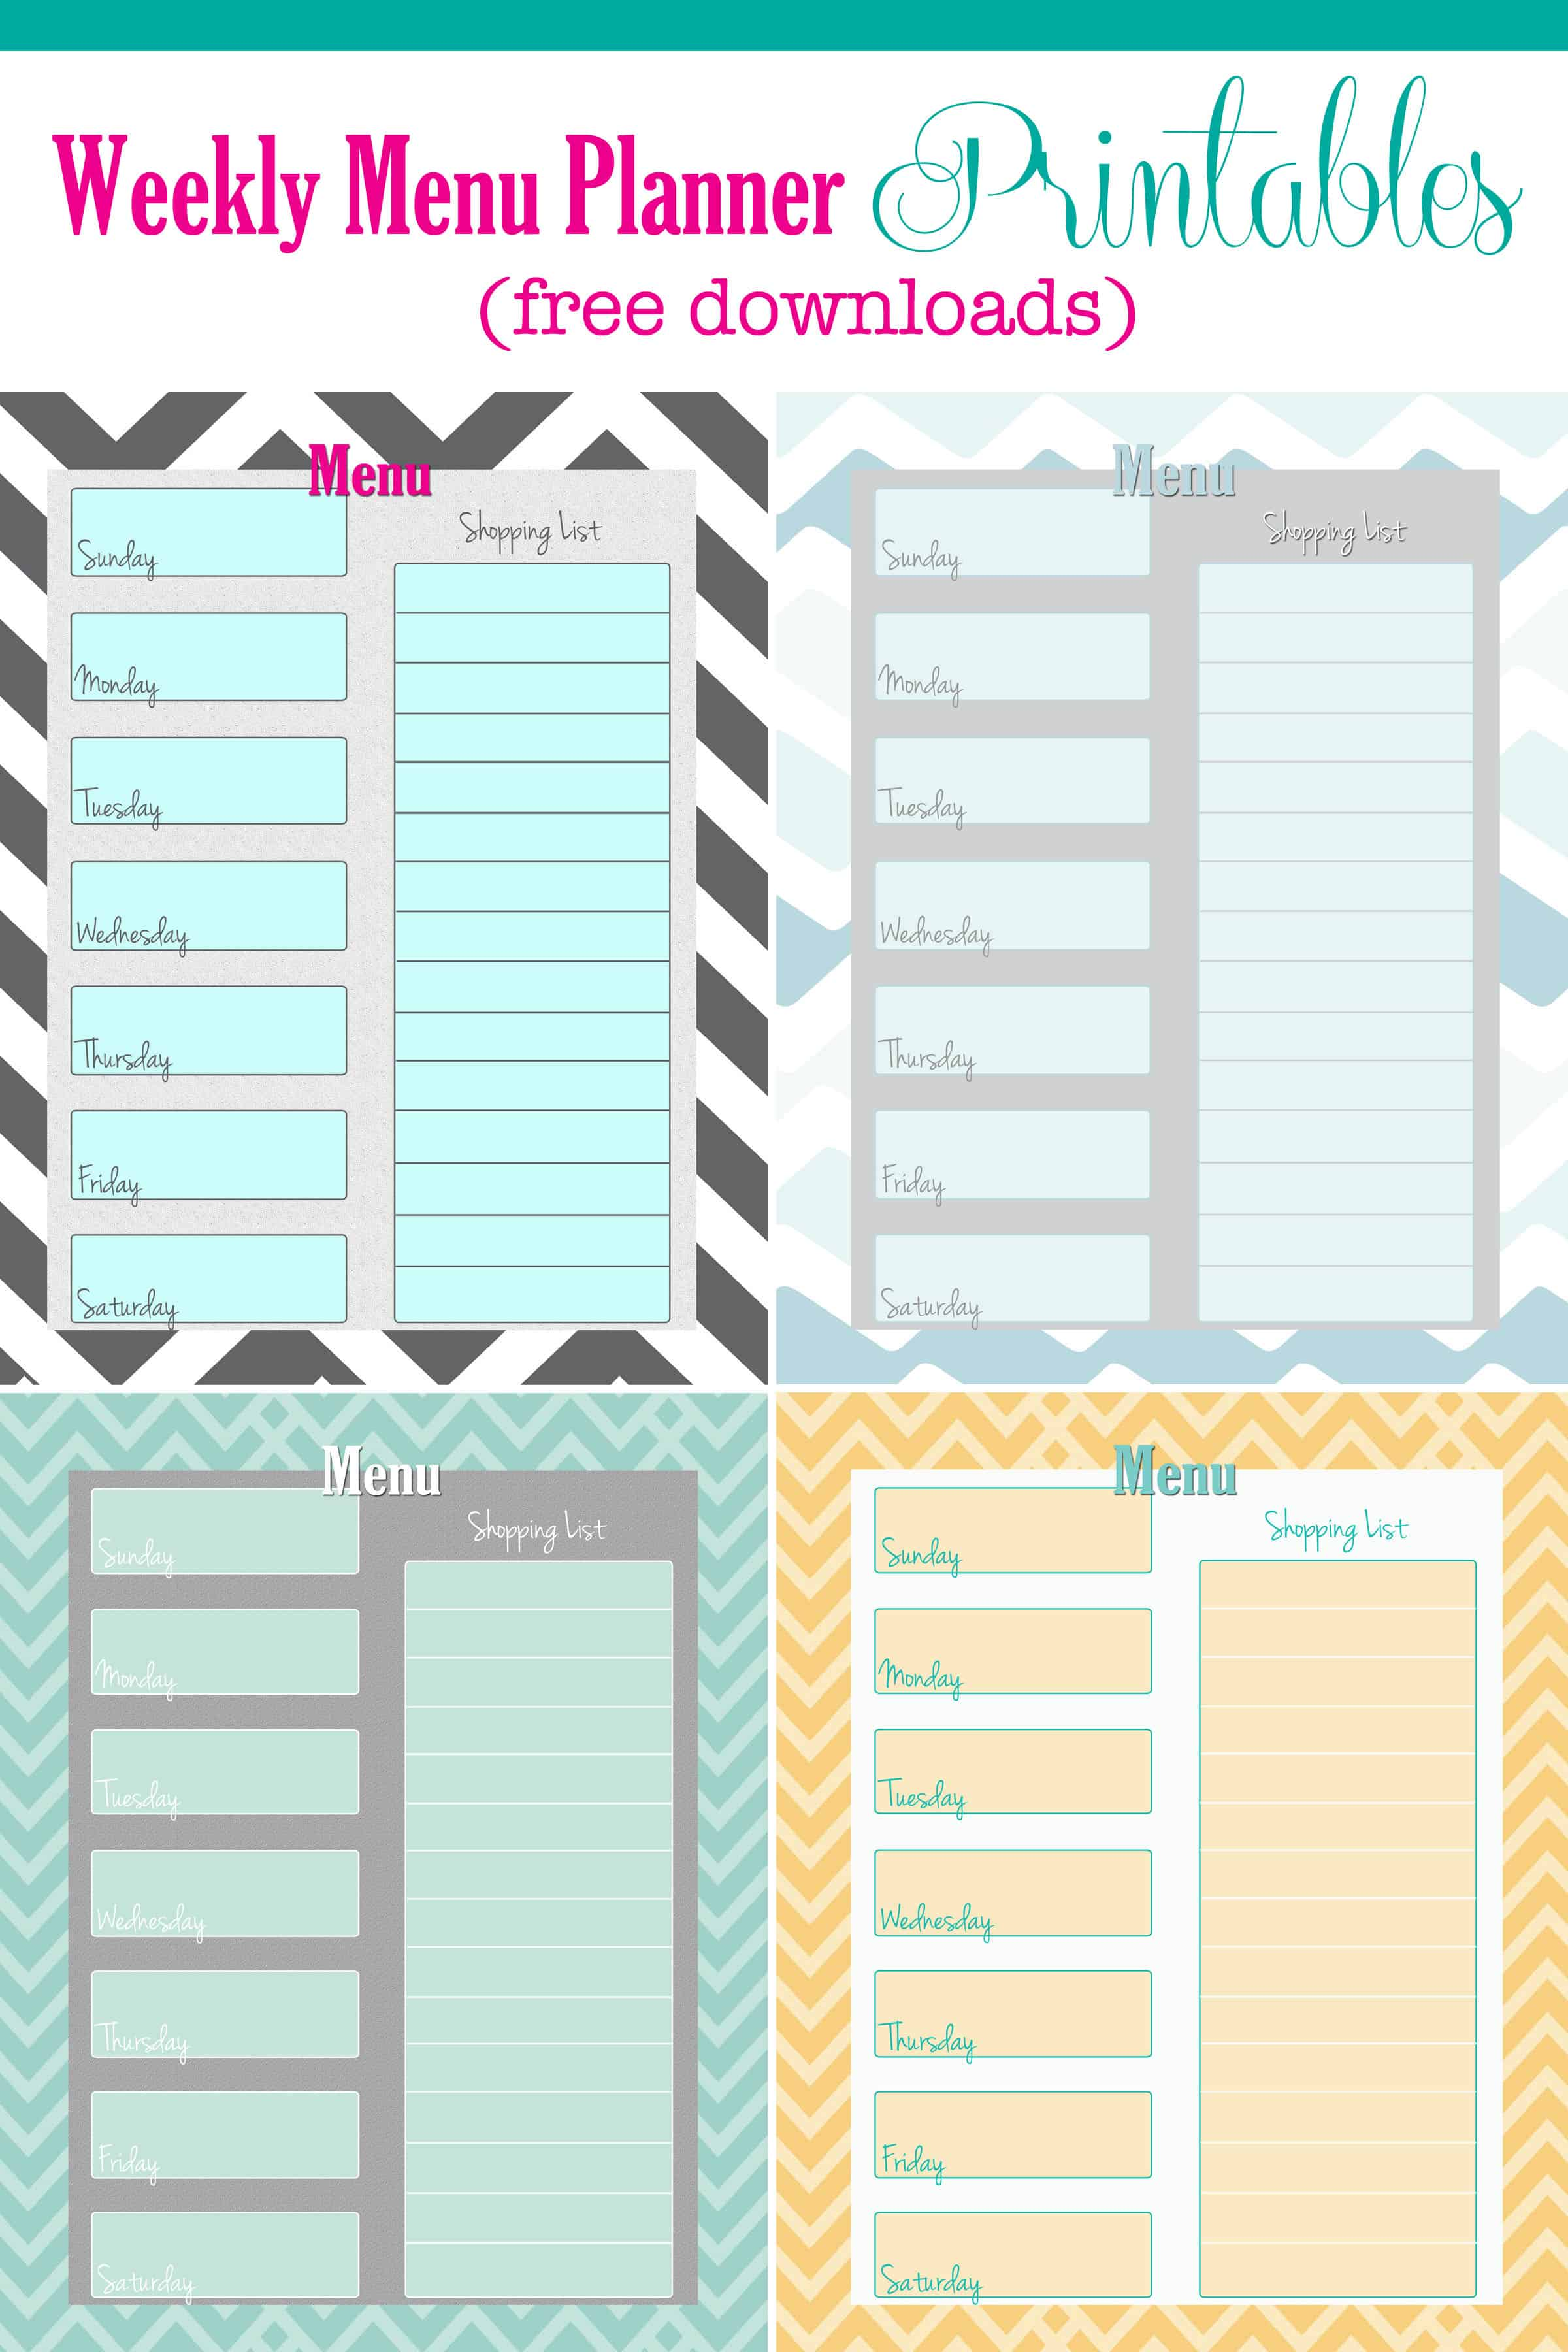 Free Weekly Menu Planner Printable 4 Colors